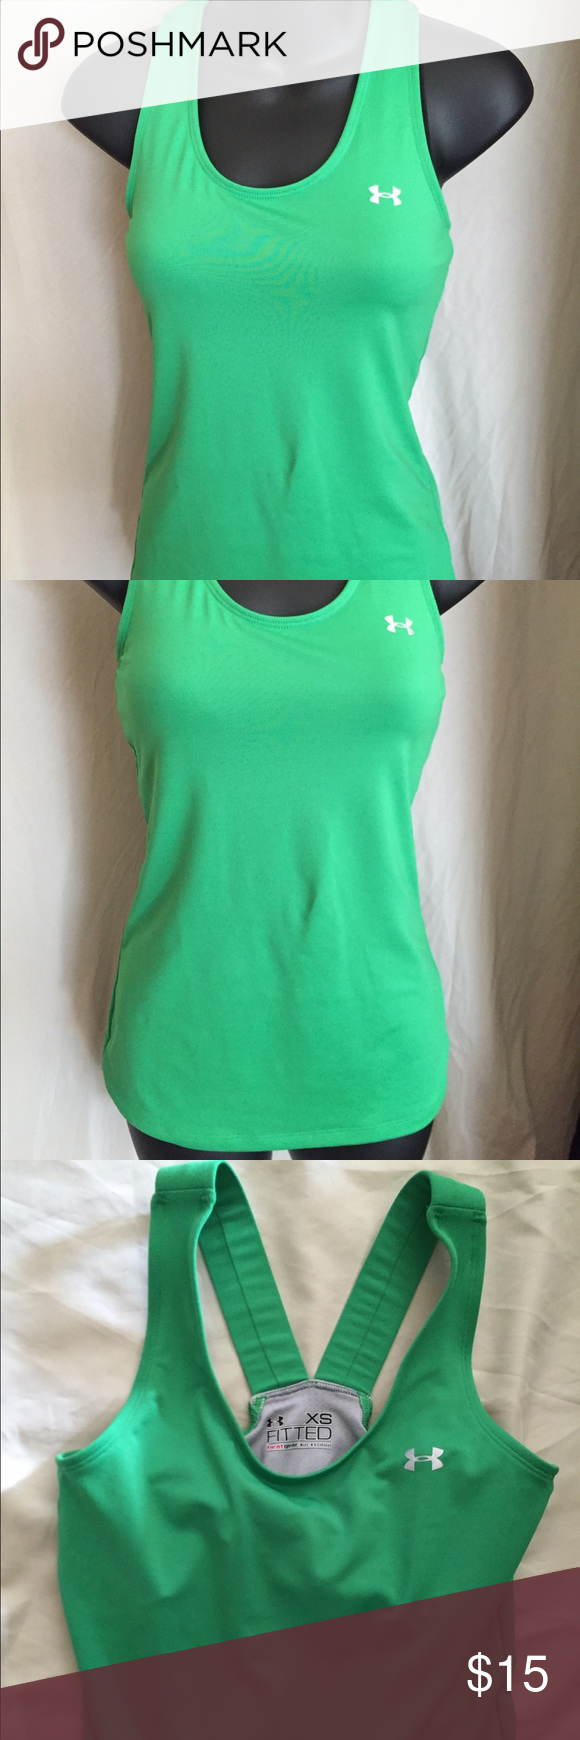 Green under armour tank Green Under Armour tank with built in sports bra. Label says fitted but it is more relaxed. Under Armour Tops Tank Tops